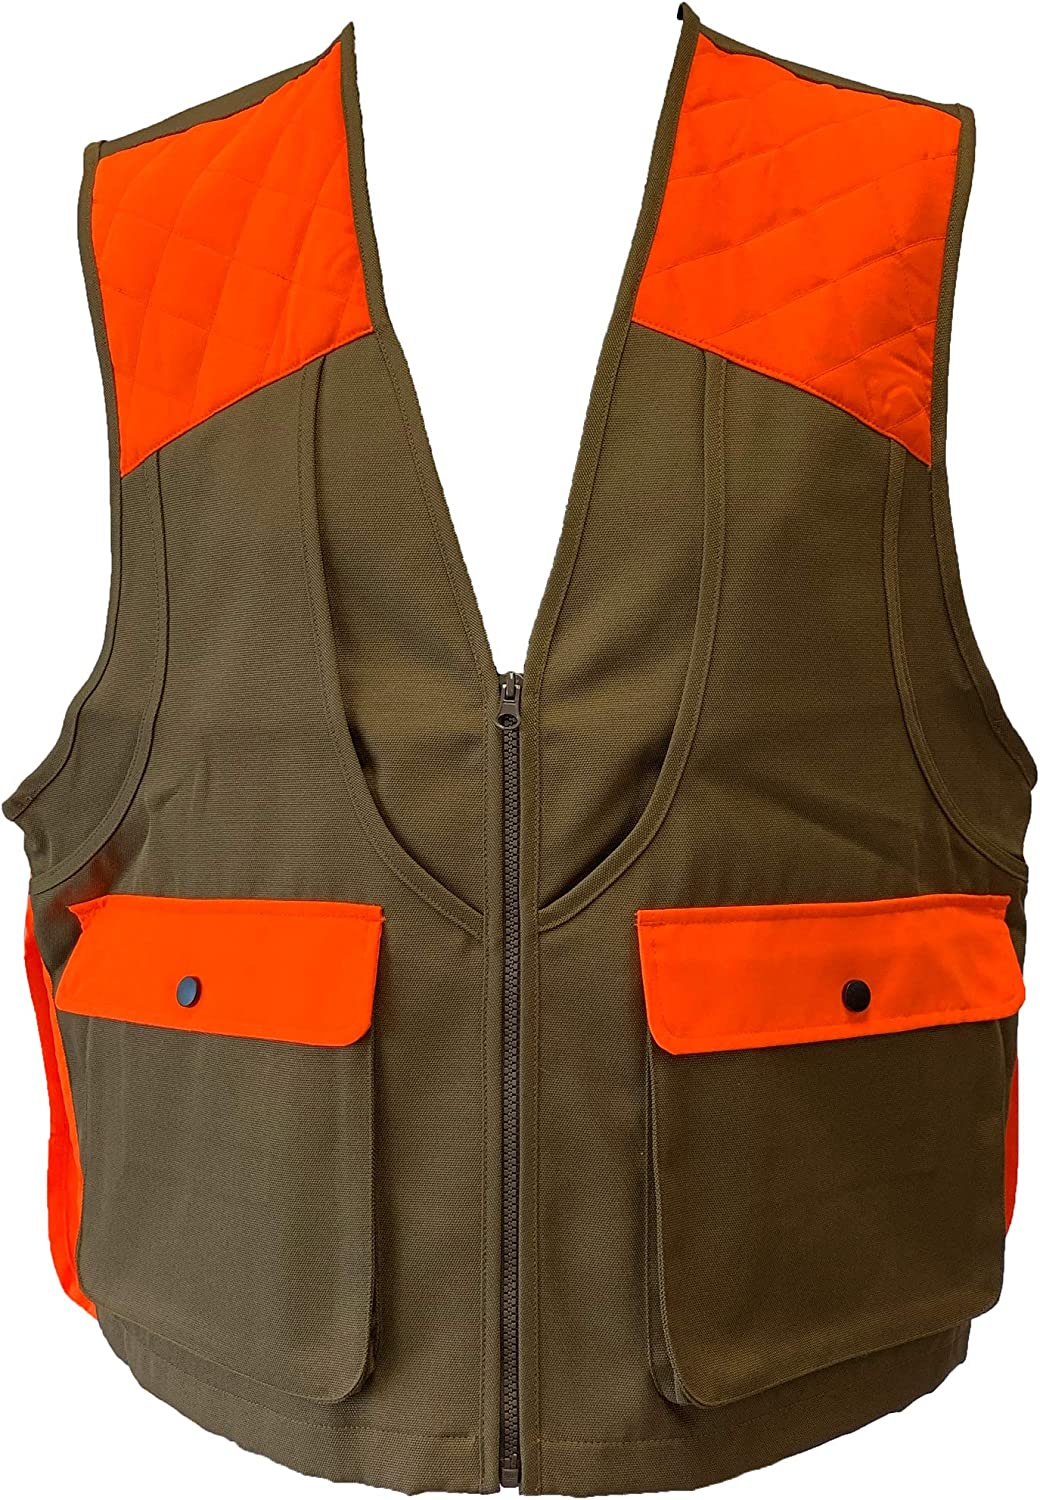 Wildfowler wholesale Upland Sale special price